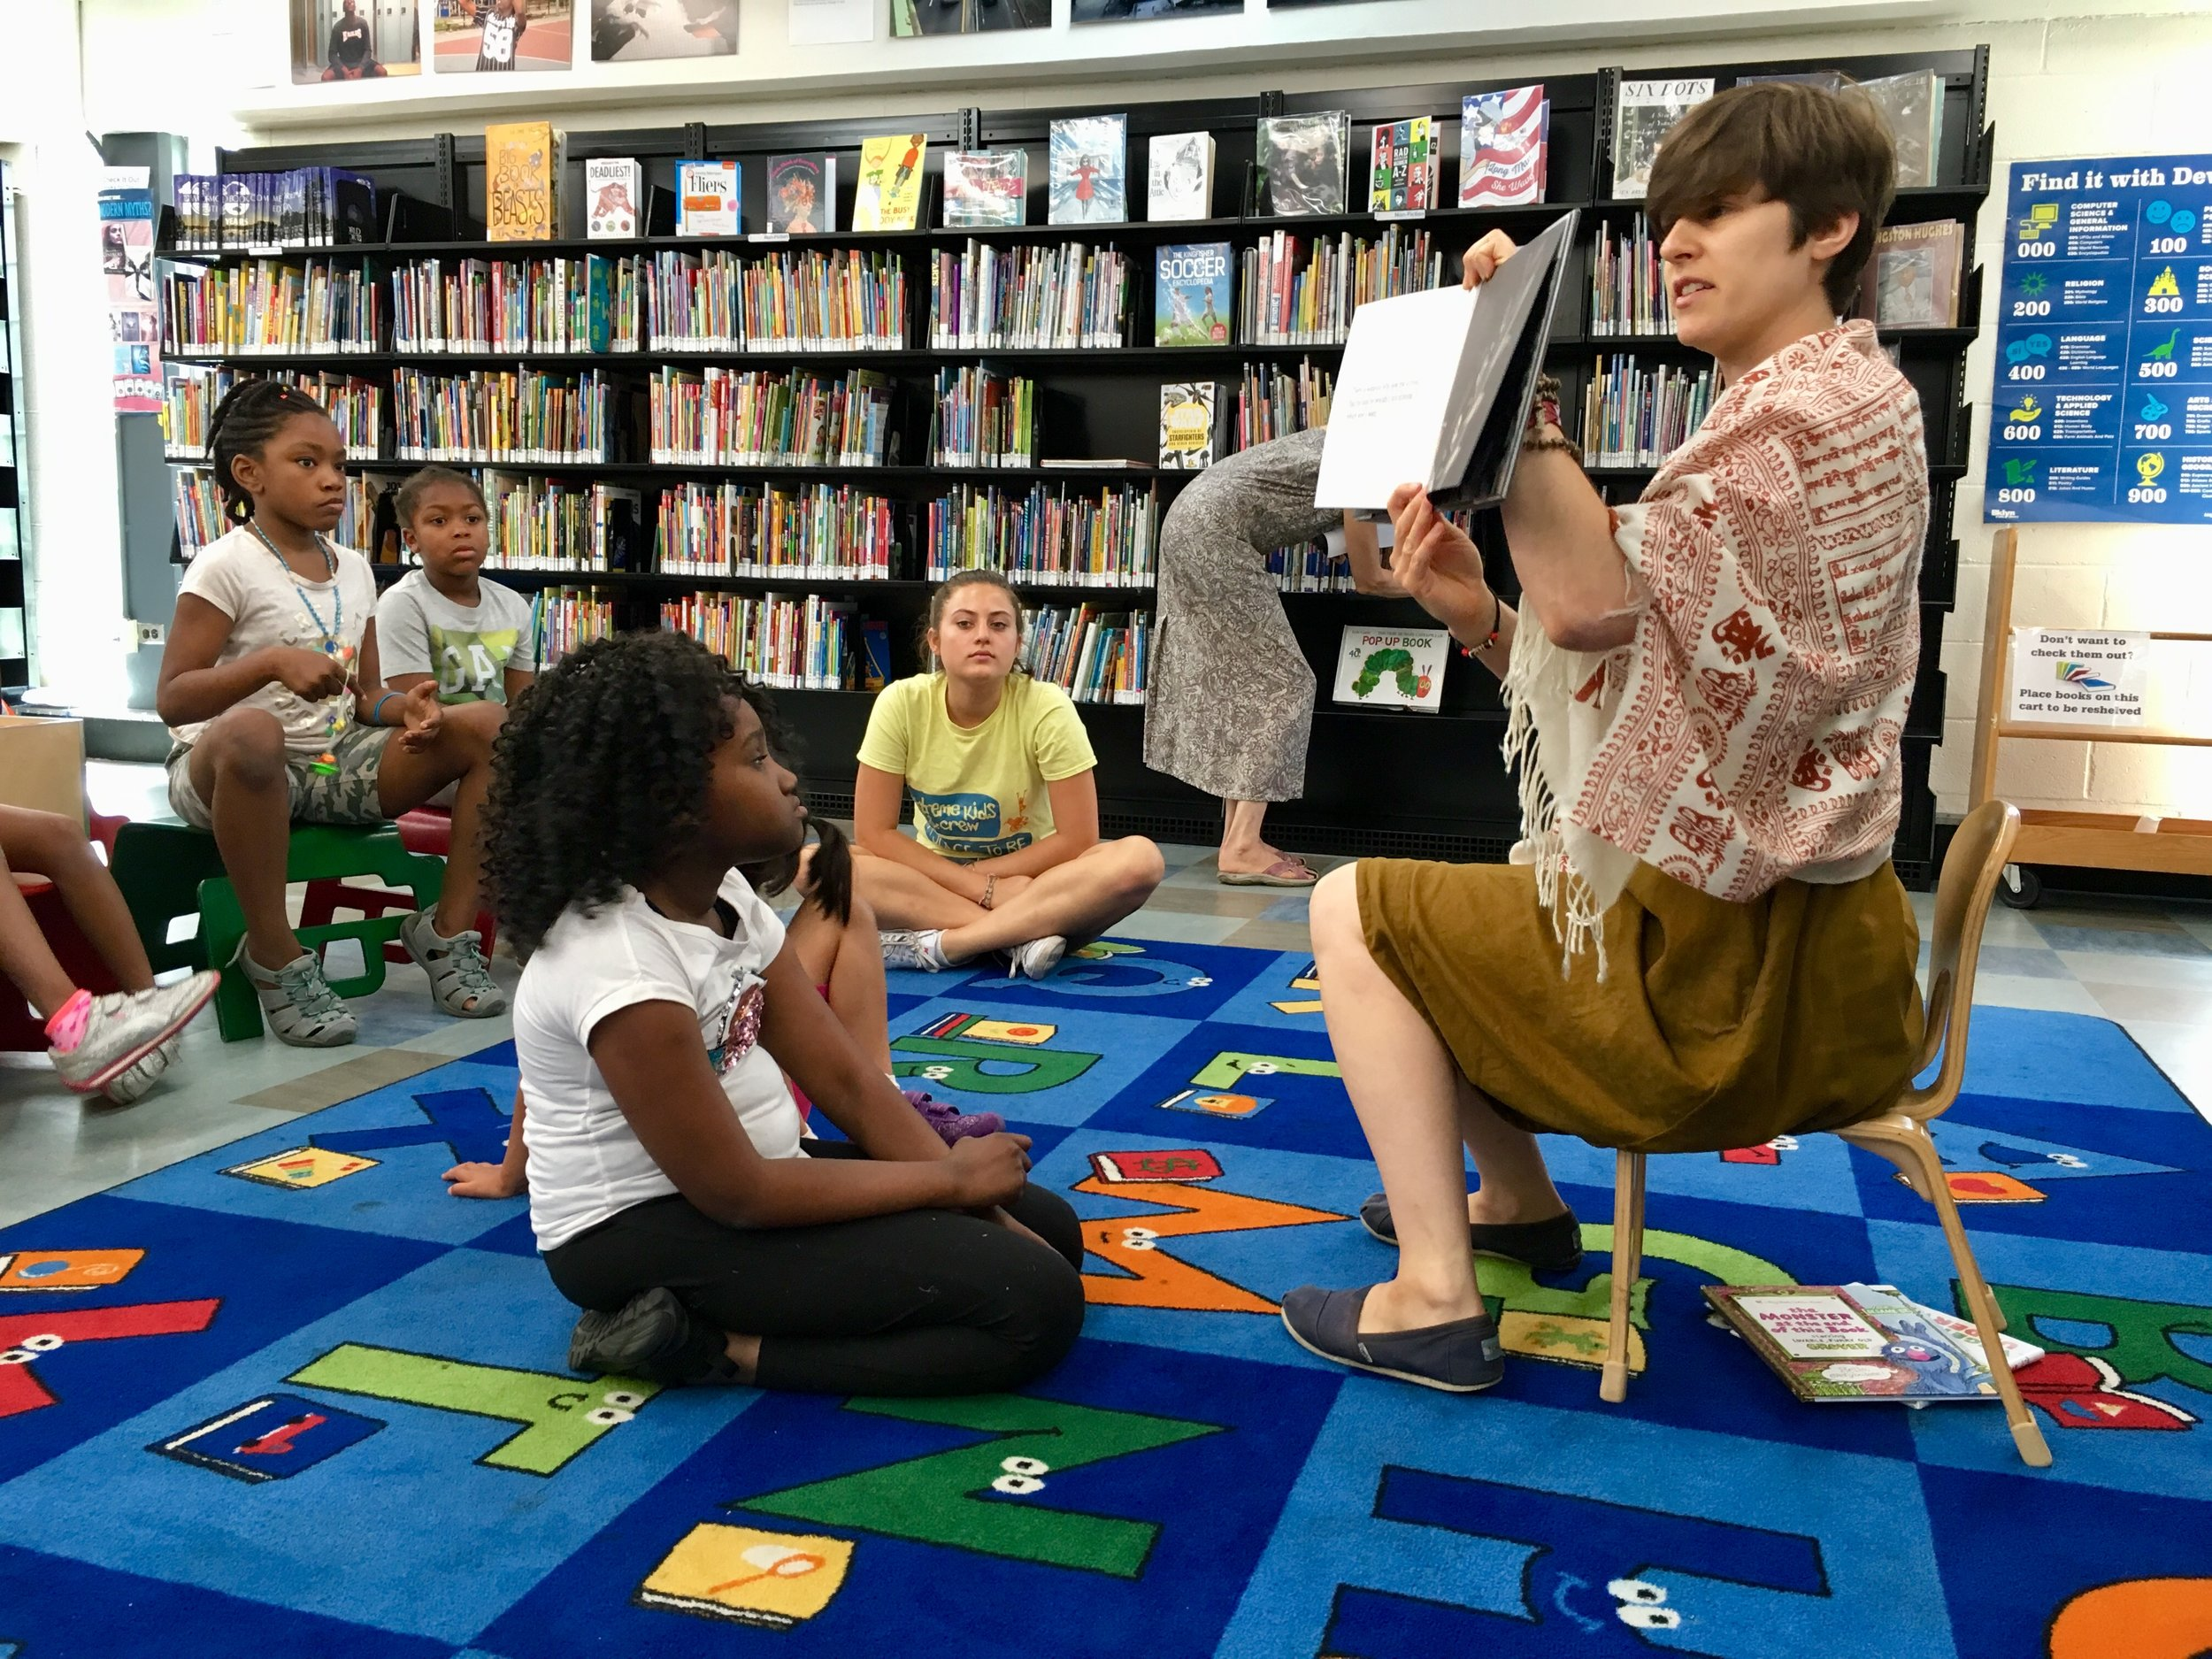 Storytime at the library.